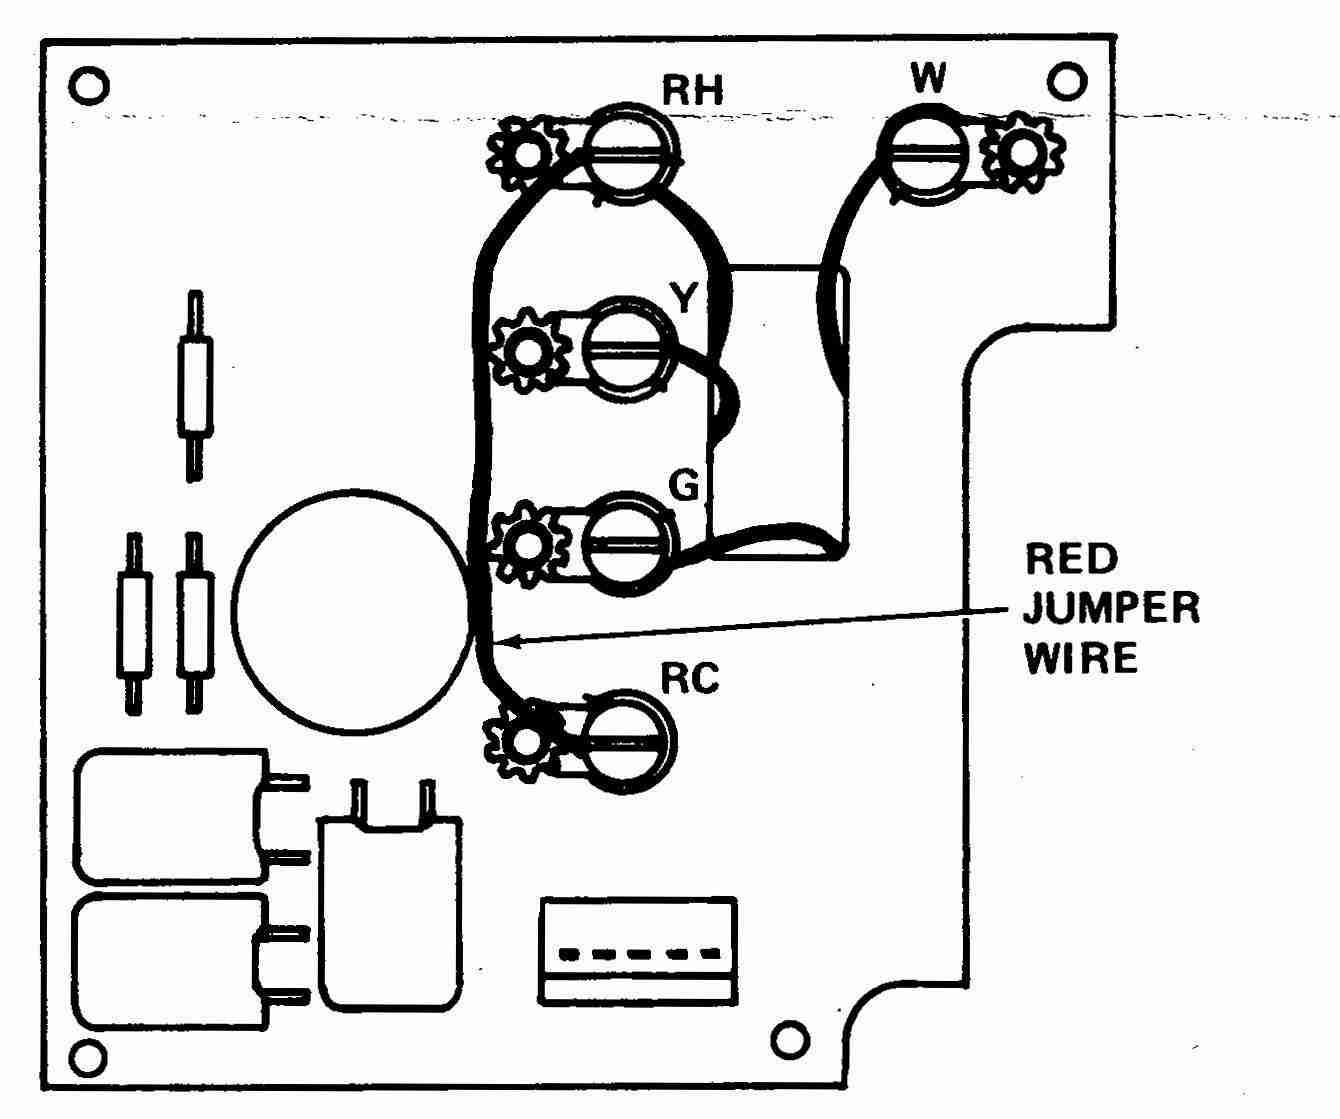 how wire a white rodgers room thermostat, white rodgers thermostat white rodgers mercury thermostat white rodgers 4 wire 1f90 thermostat wiring diagram